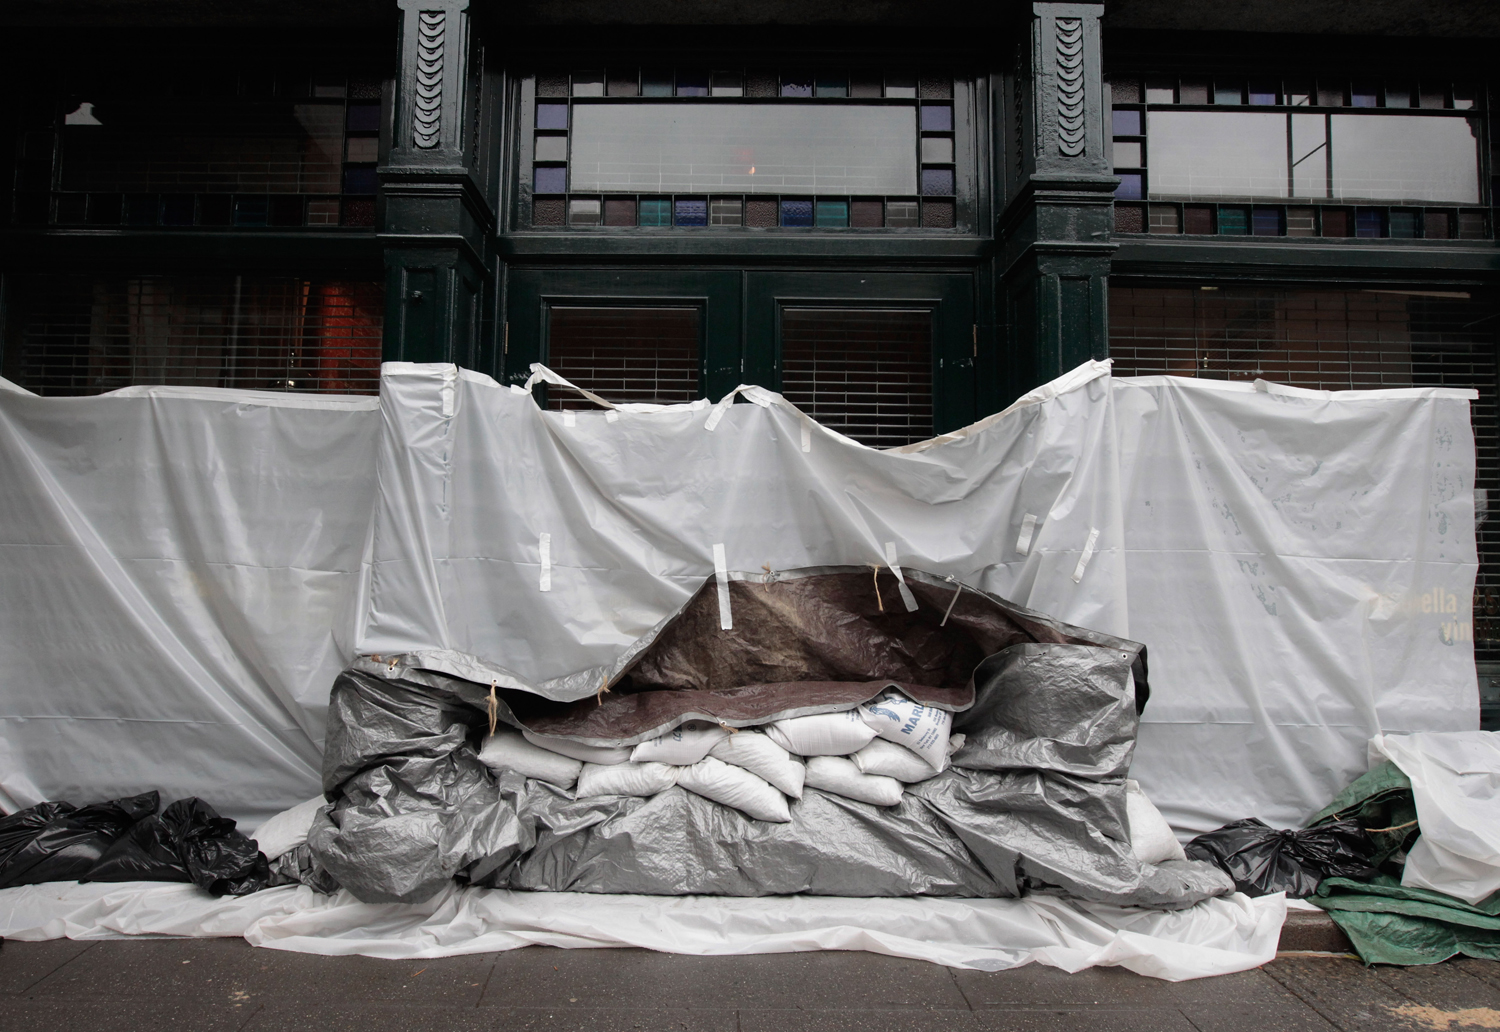 August 27, 2011, New York, NY. A liquor store is covered in plastic and sandbags along the South Street Seaport.